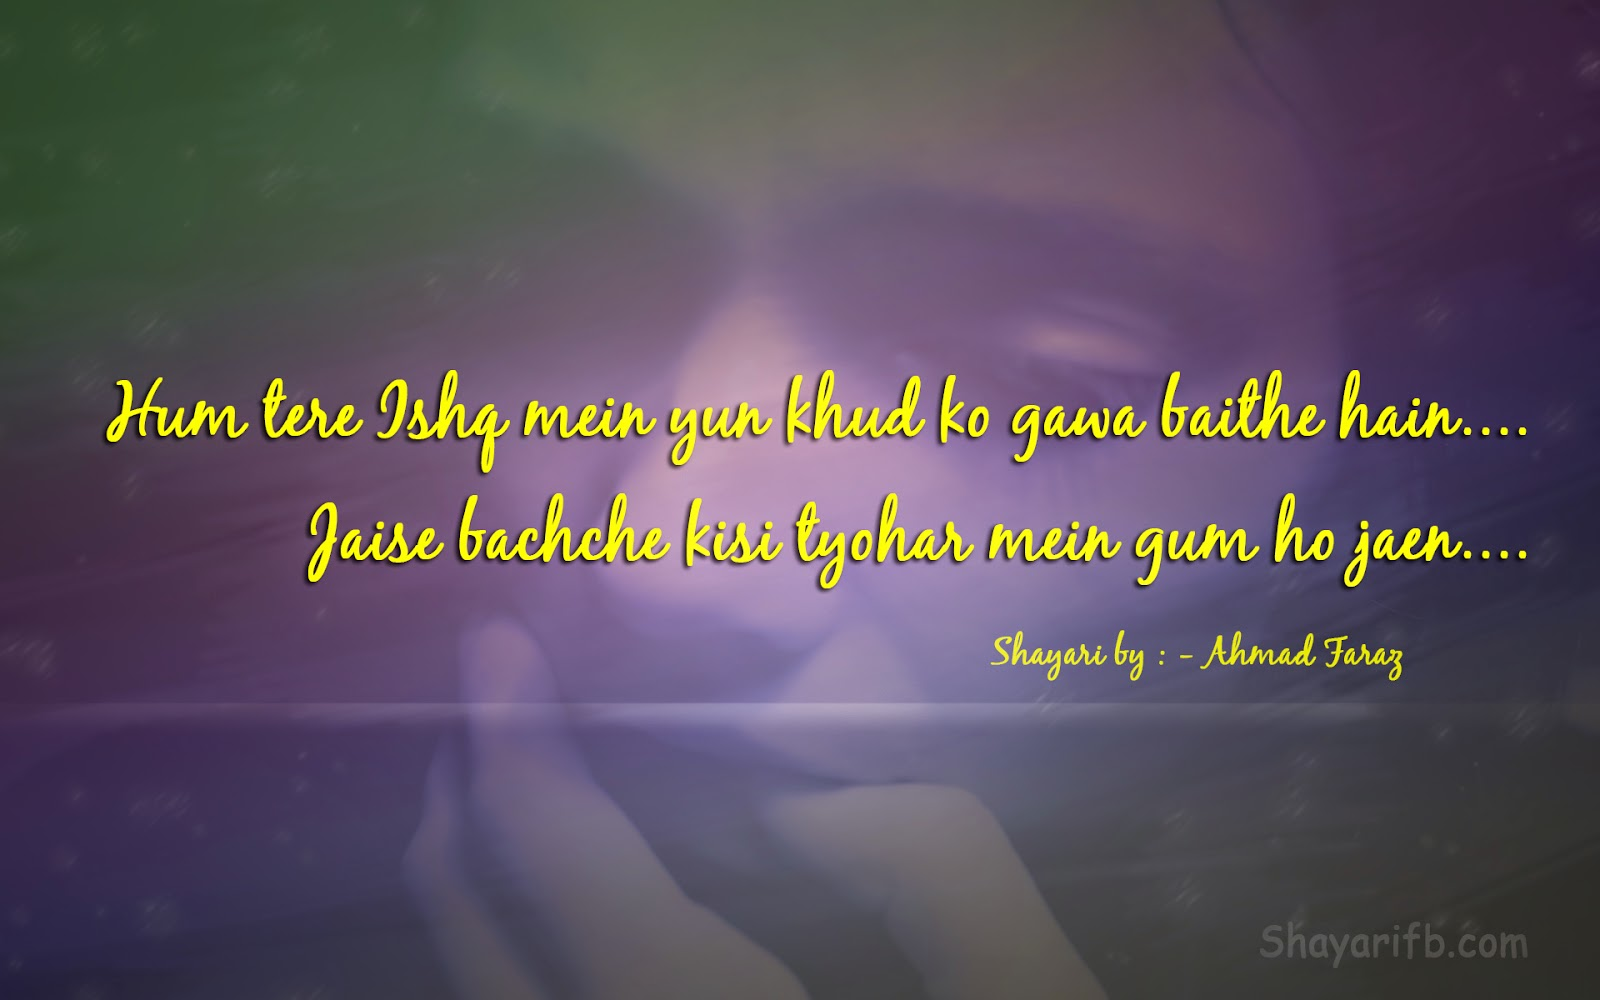 Sad Images Sad wallpapers Sad Shayari